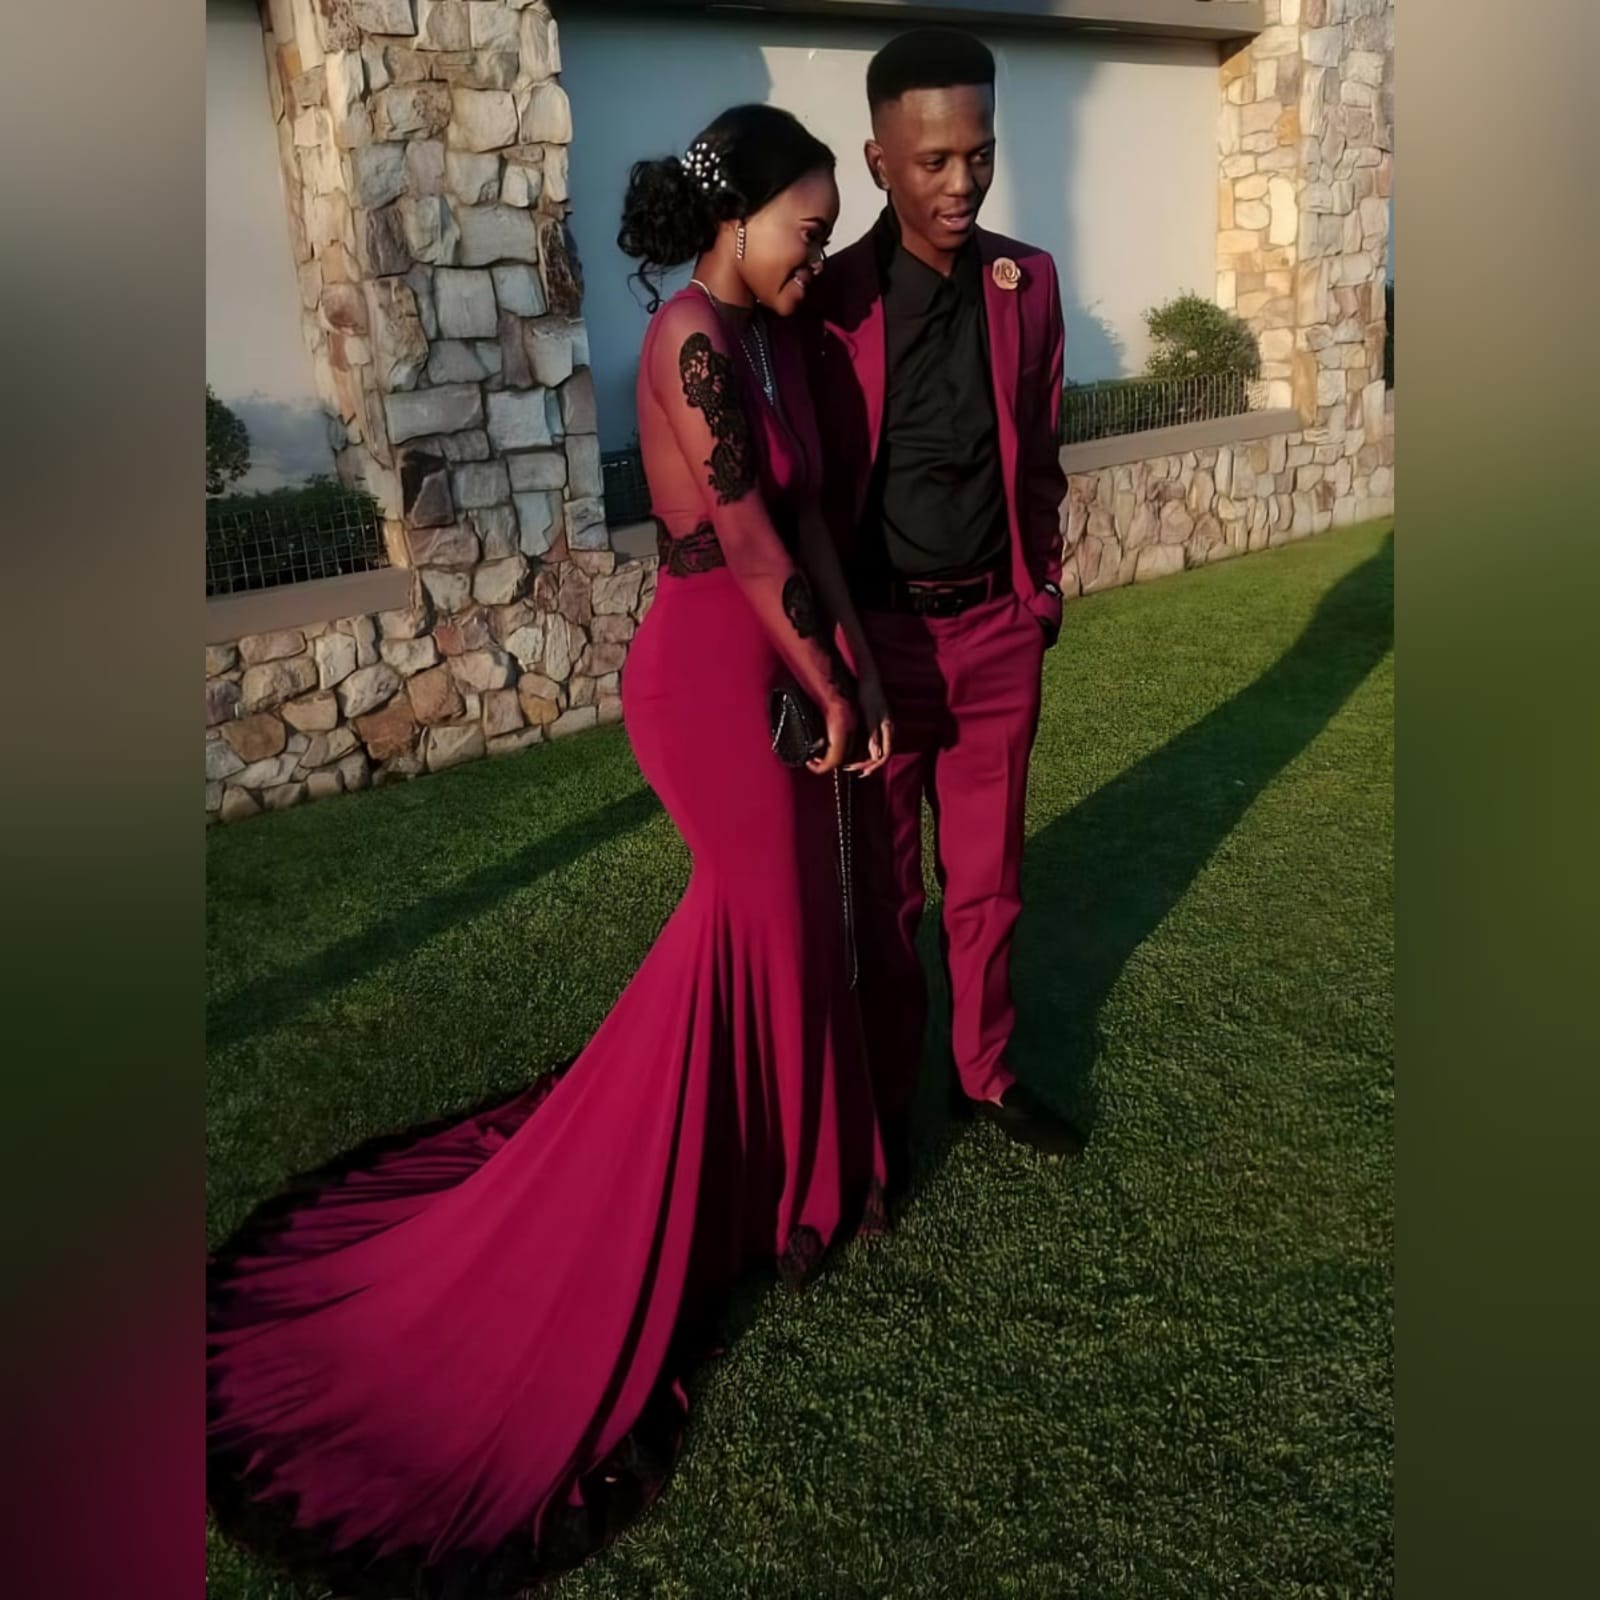 Soft mermaid burgundy matric farewell dress detailed with black lace 4 palesa looked gorgeous with my creation. A soft mermaid burgundy matric farewell dress detailed with black lace. With a sheer open back and long sheer sleeves detailed with black lace.